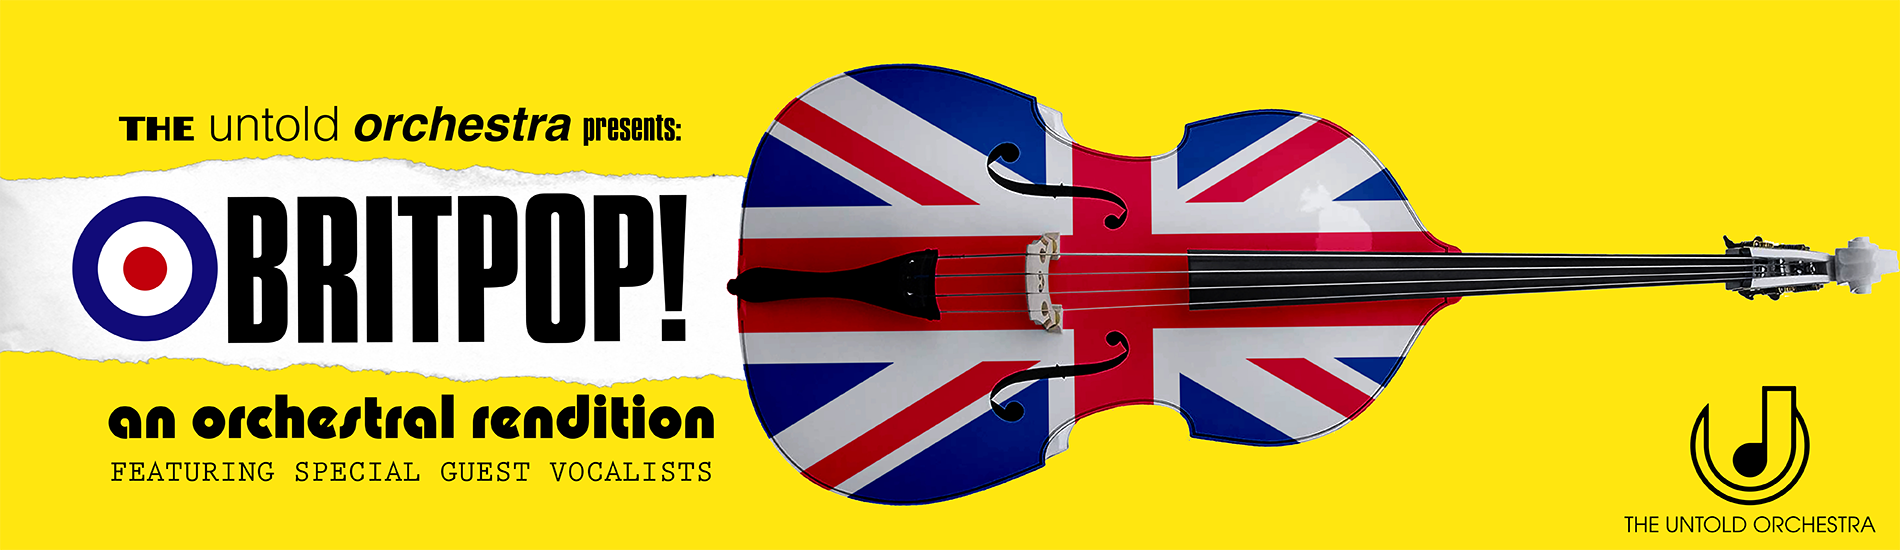 Britpop: An Orchestral Rendition - 23rd June